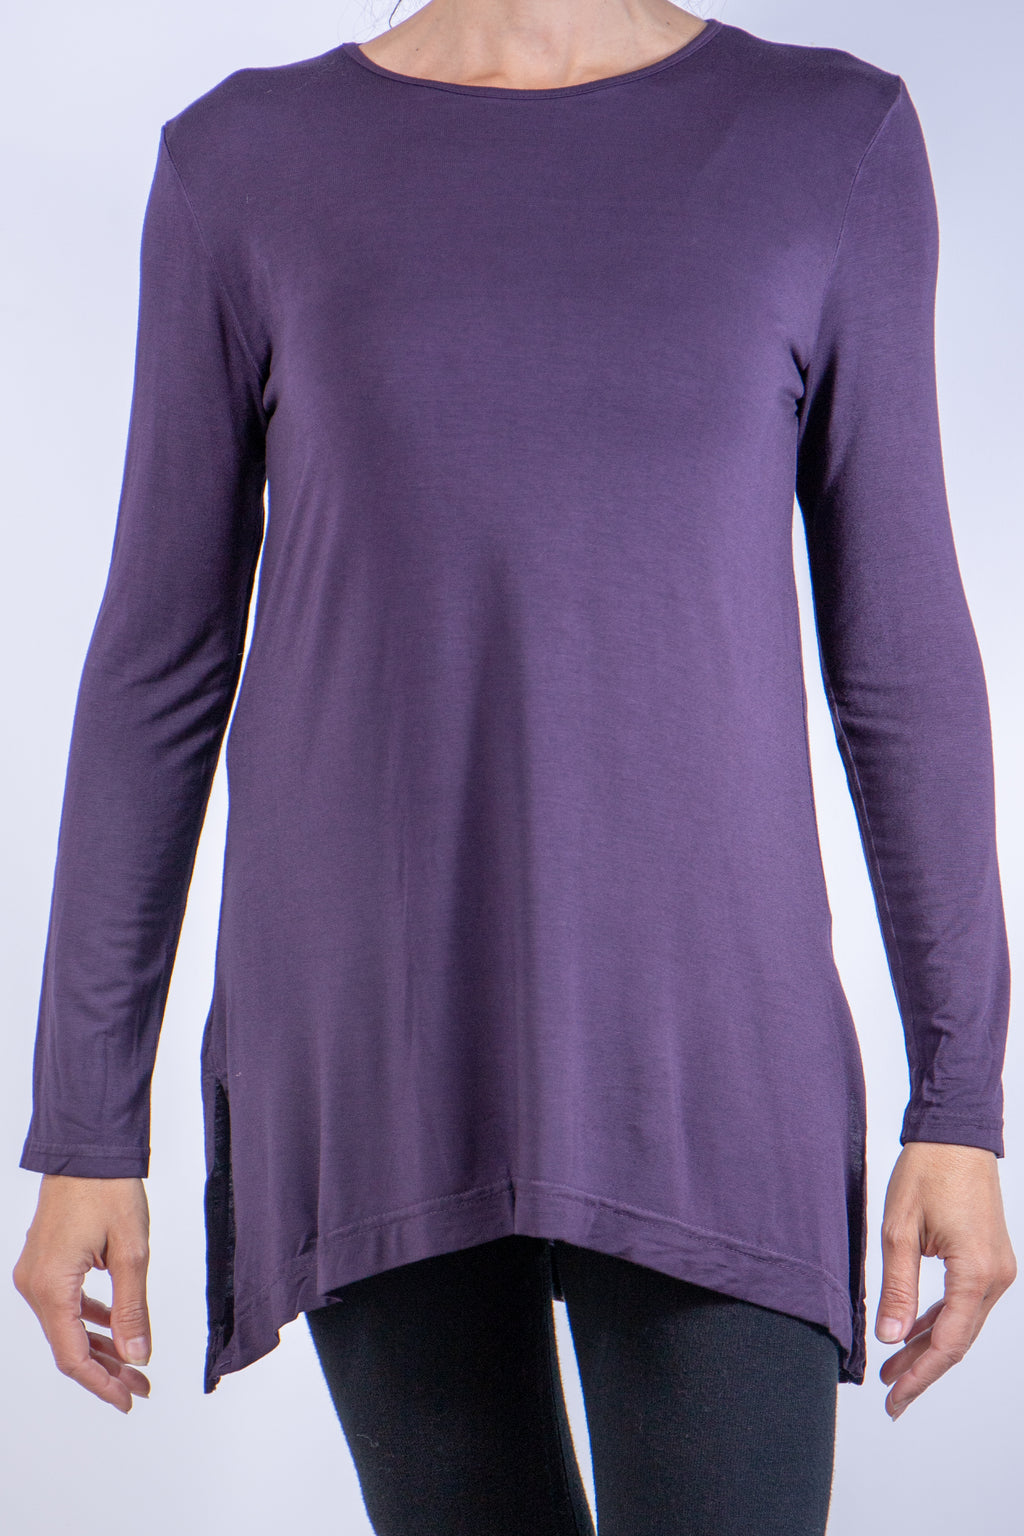 Crewneck long sleeves tunic with slit at bottom